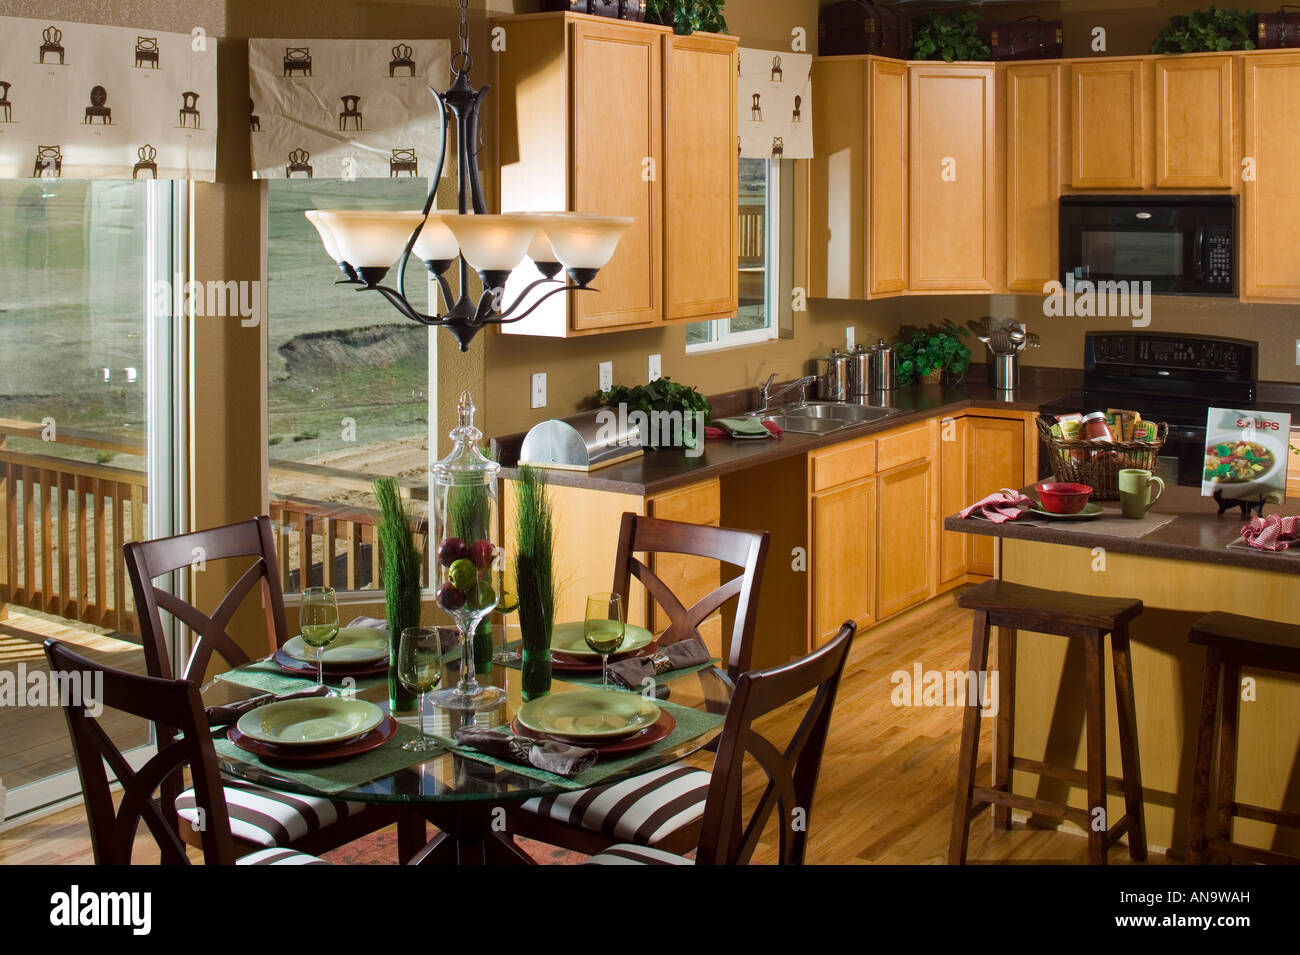 Denver Colorado Real Estate Single Family Home, Middle Class Home Interior  Kitchen Dining Room Table And Chairs